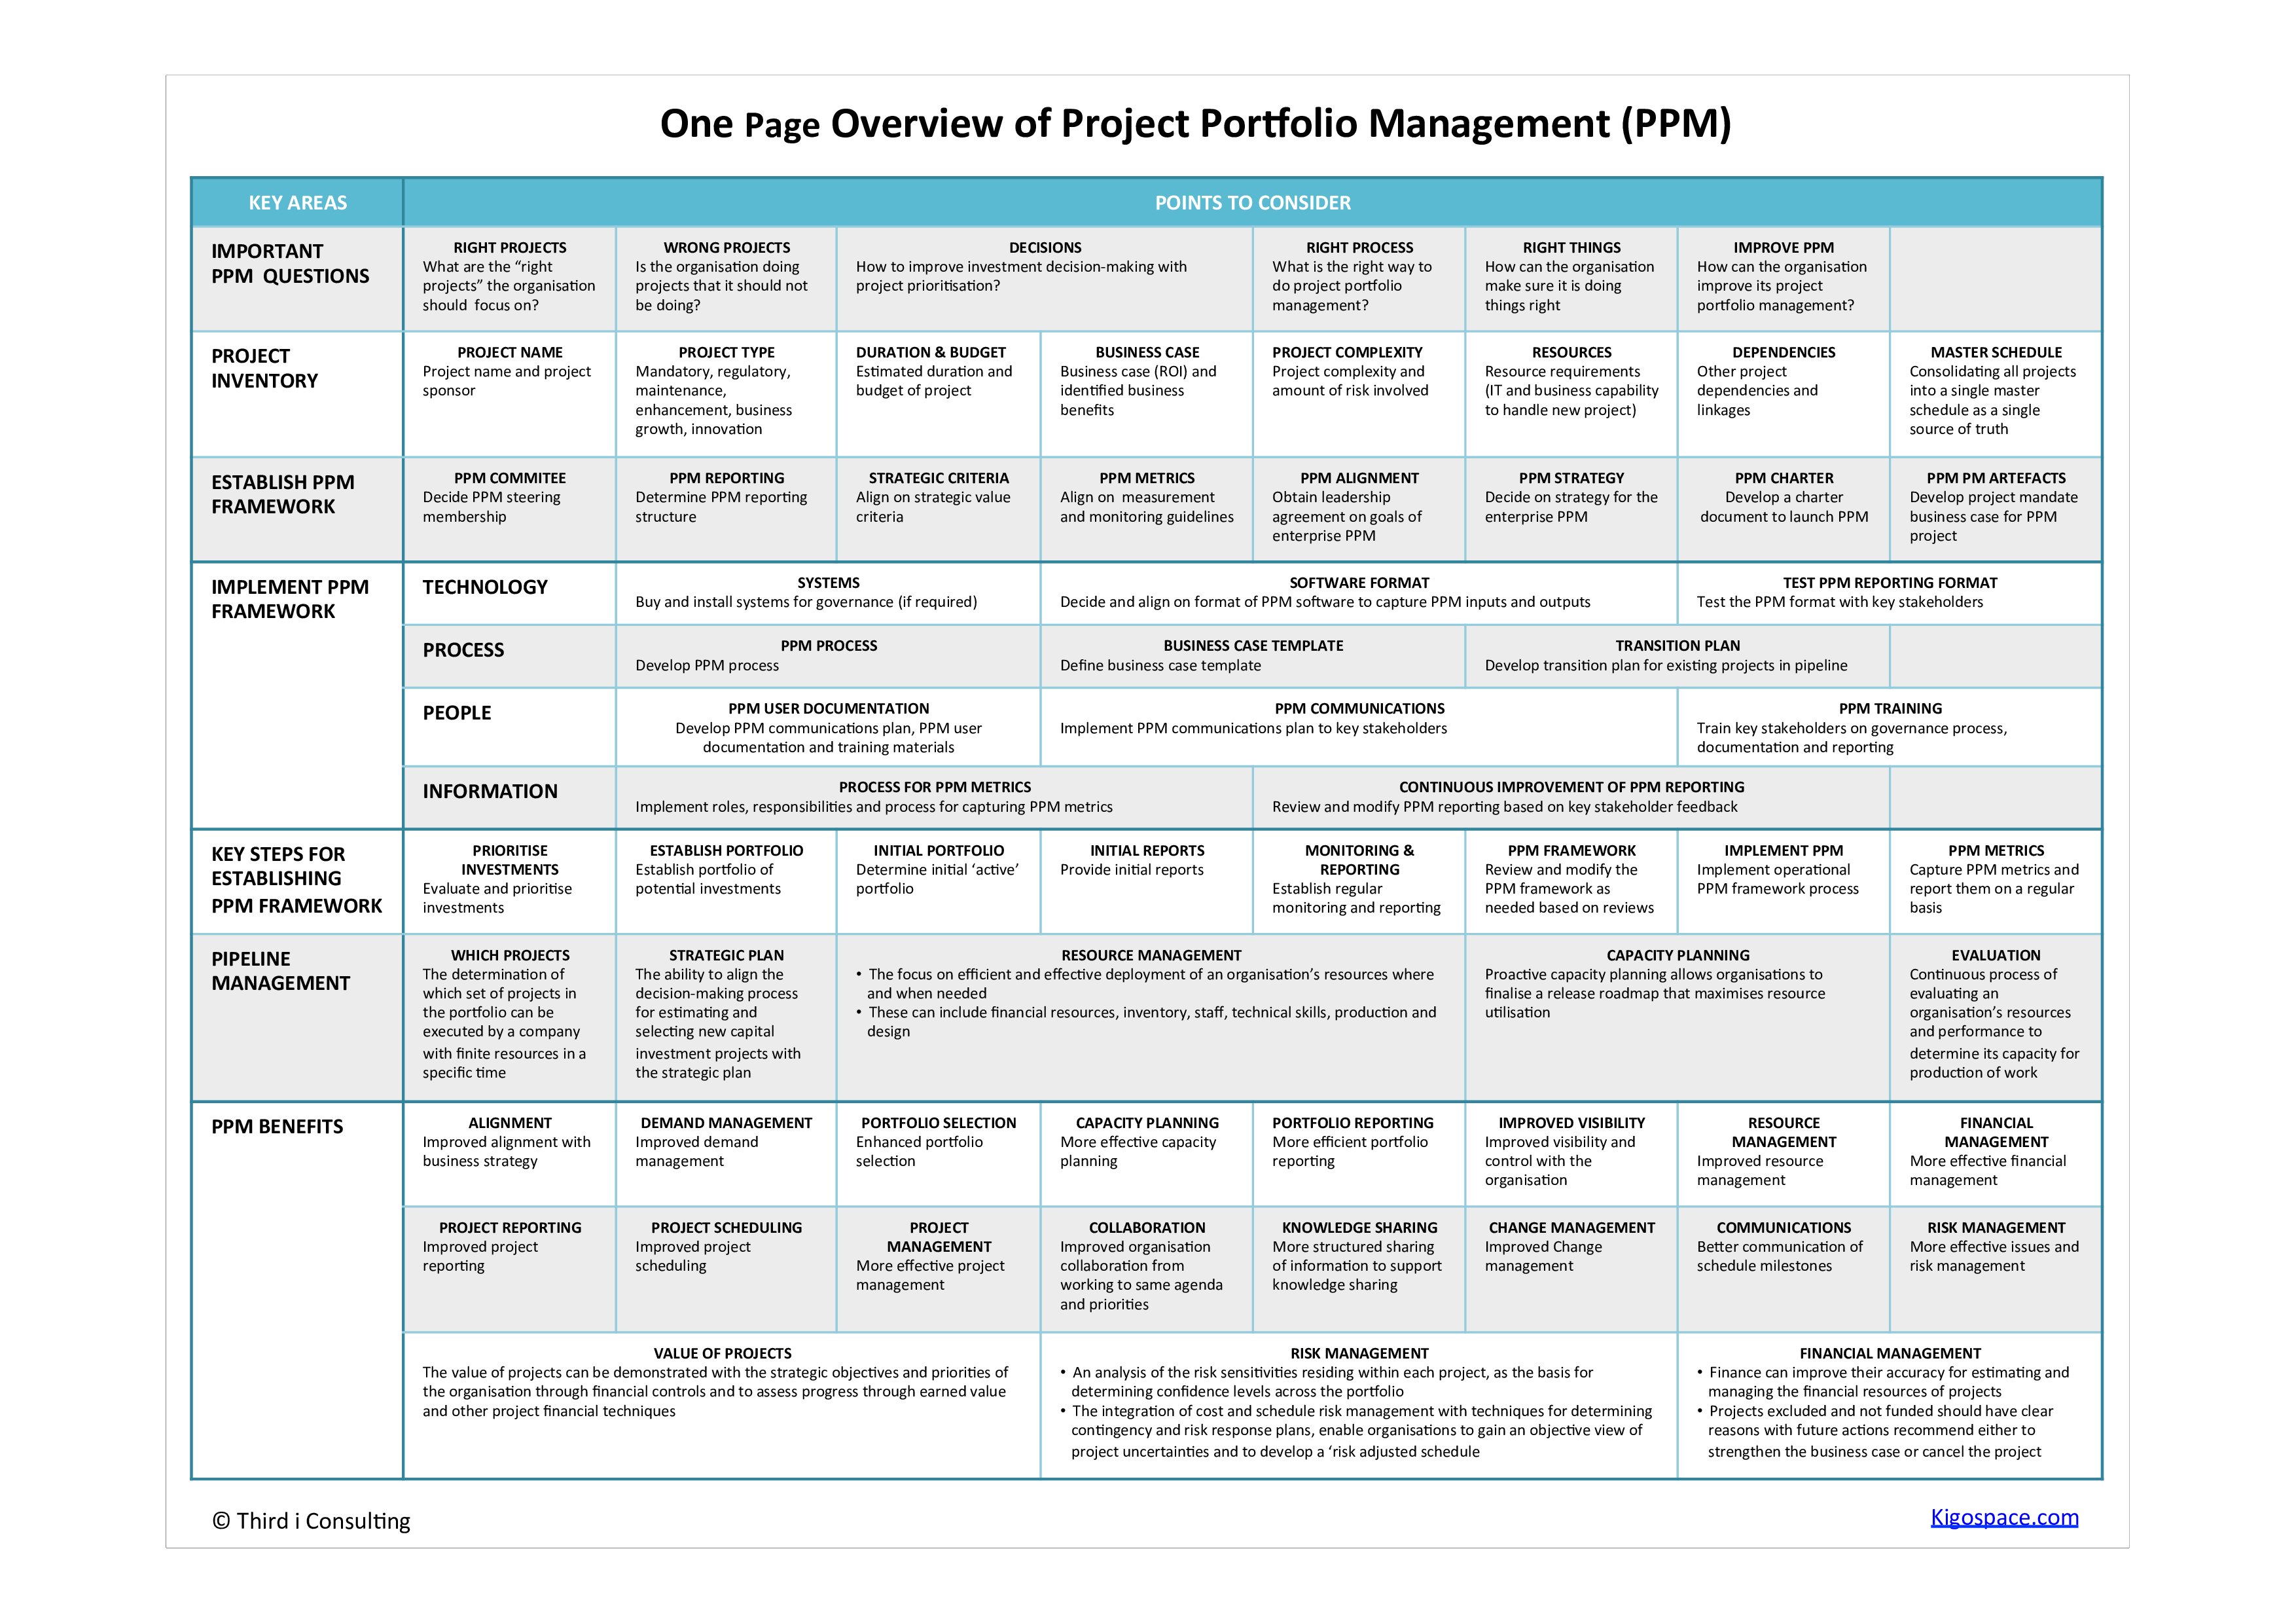 project portfolio management one page overview do you need a one